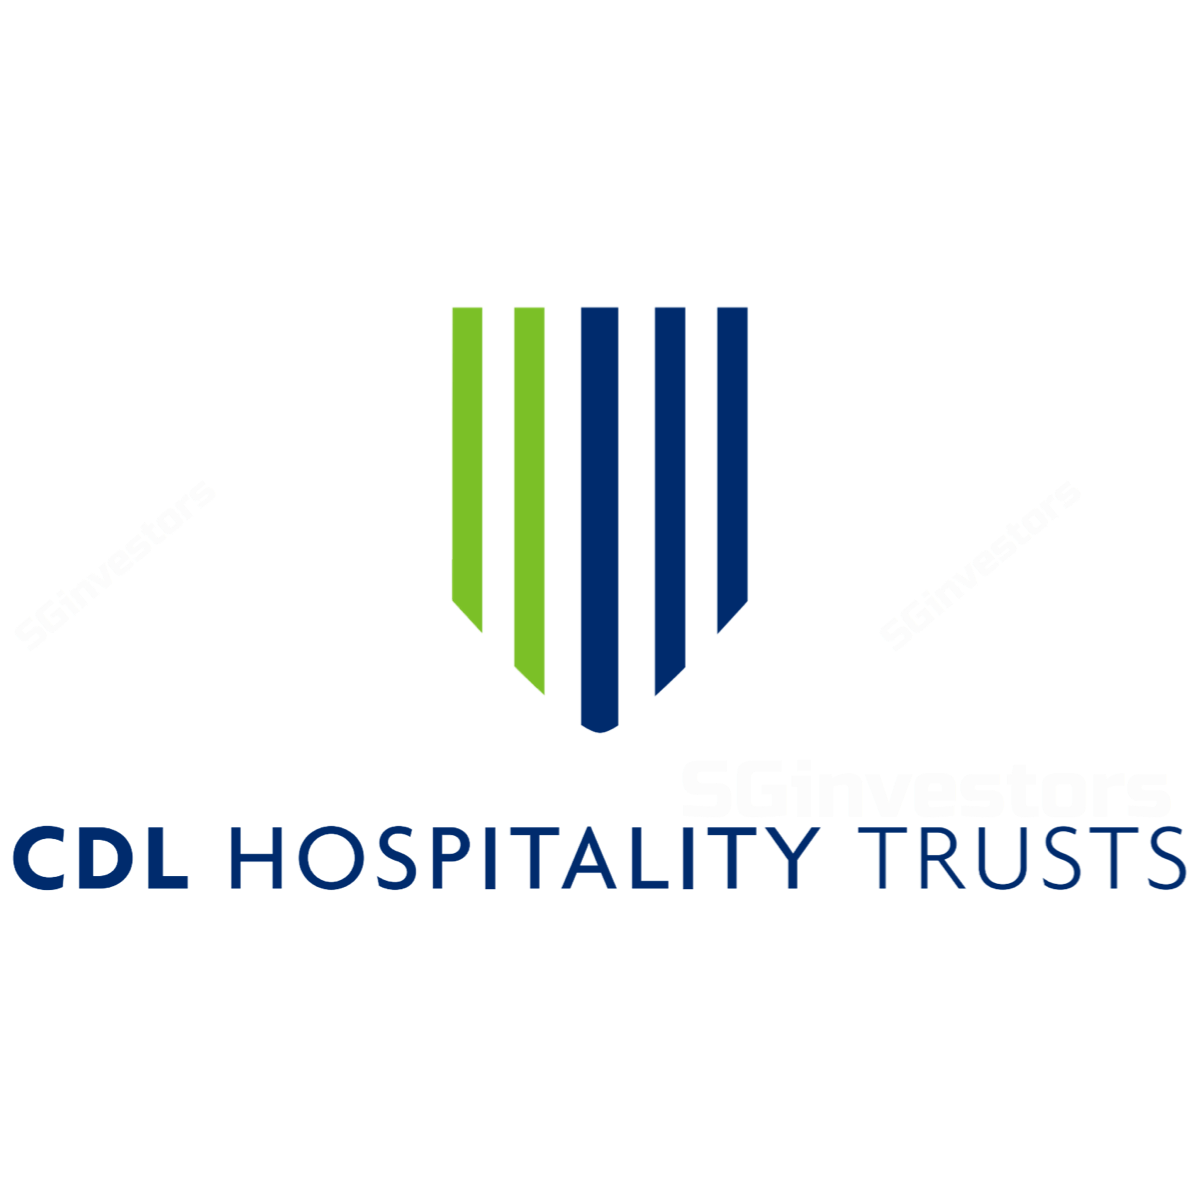 CDL Hospitality Trust - CIMB Research 2017-07-28: Is The Singapore Hotel Market Bottoming?